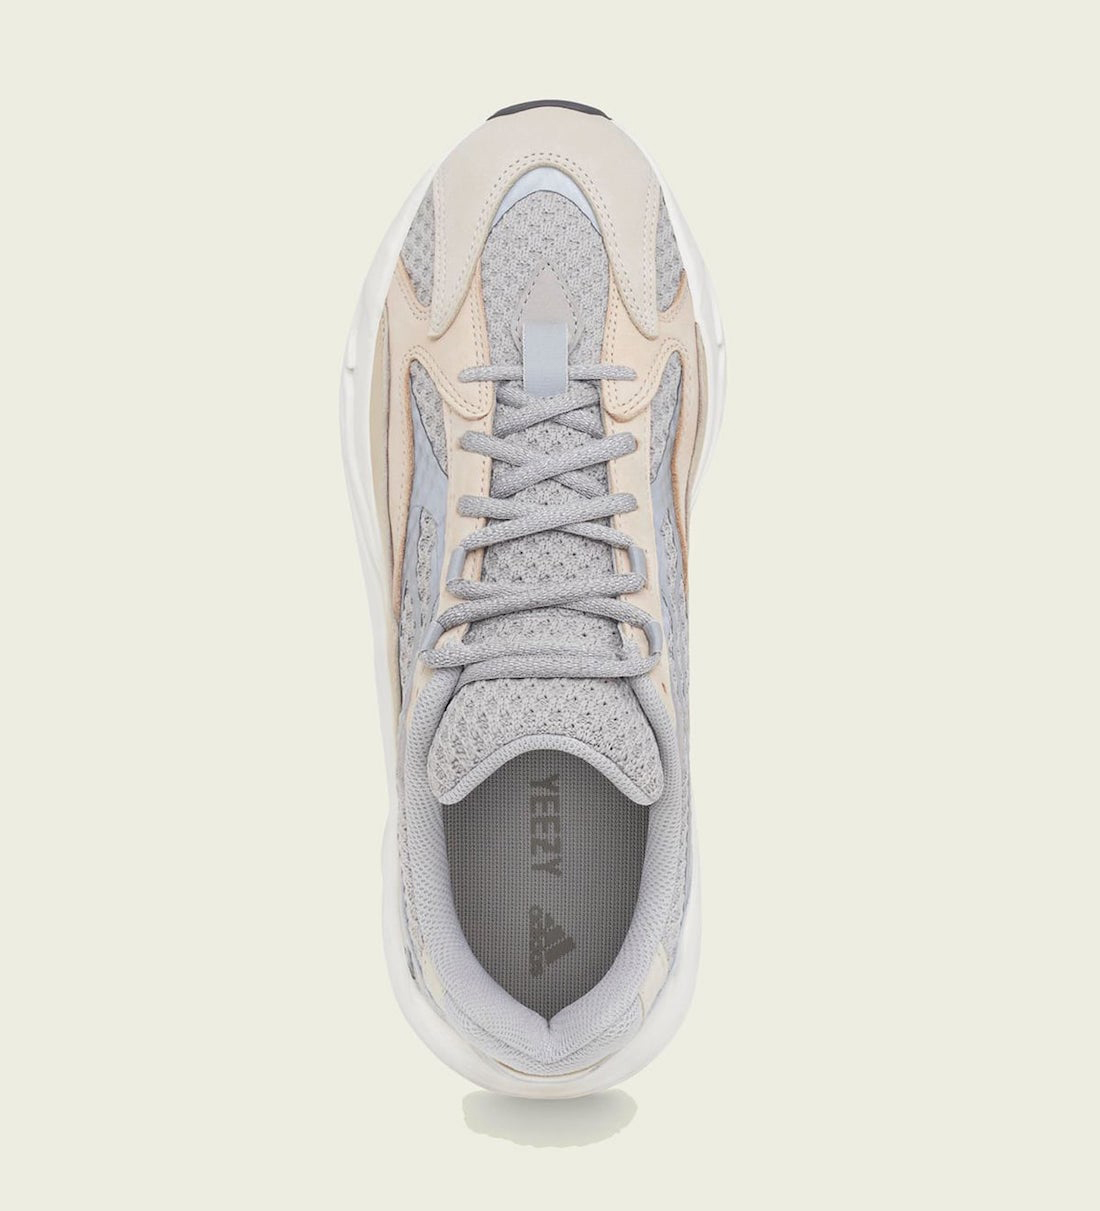 yeezy-700-v2-cream-release-date-price-resell-where-to-buy-2